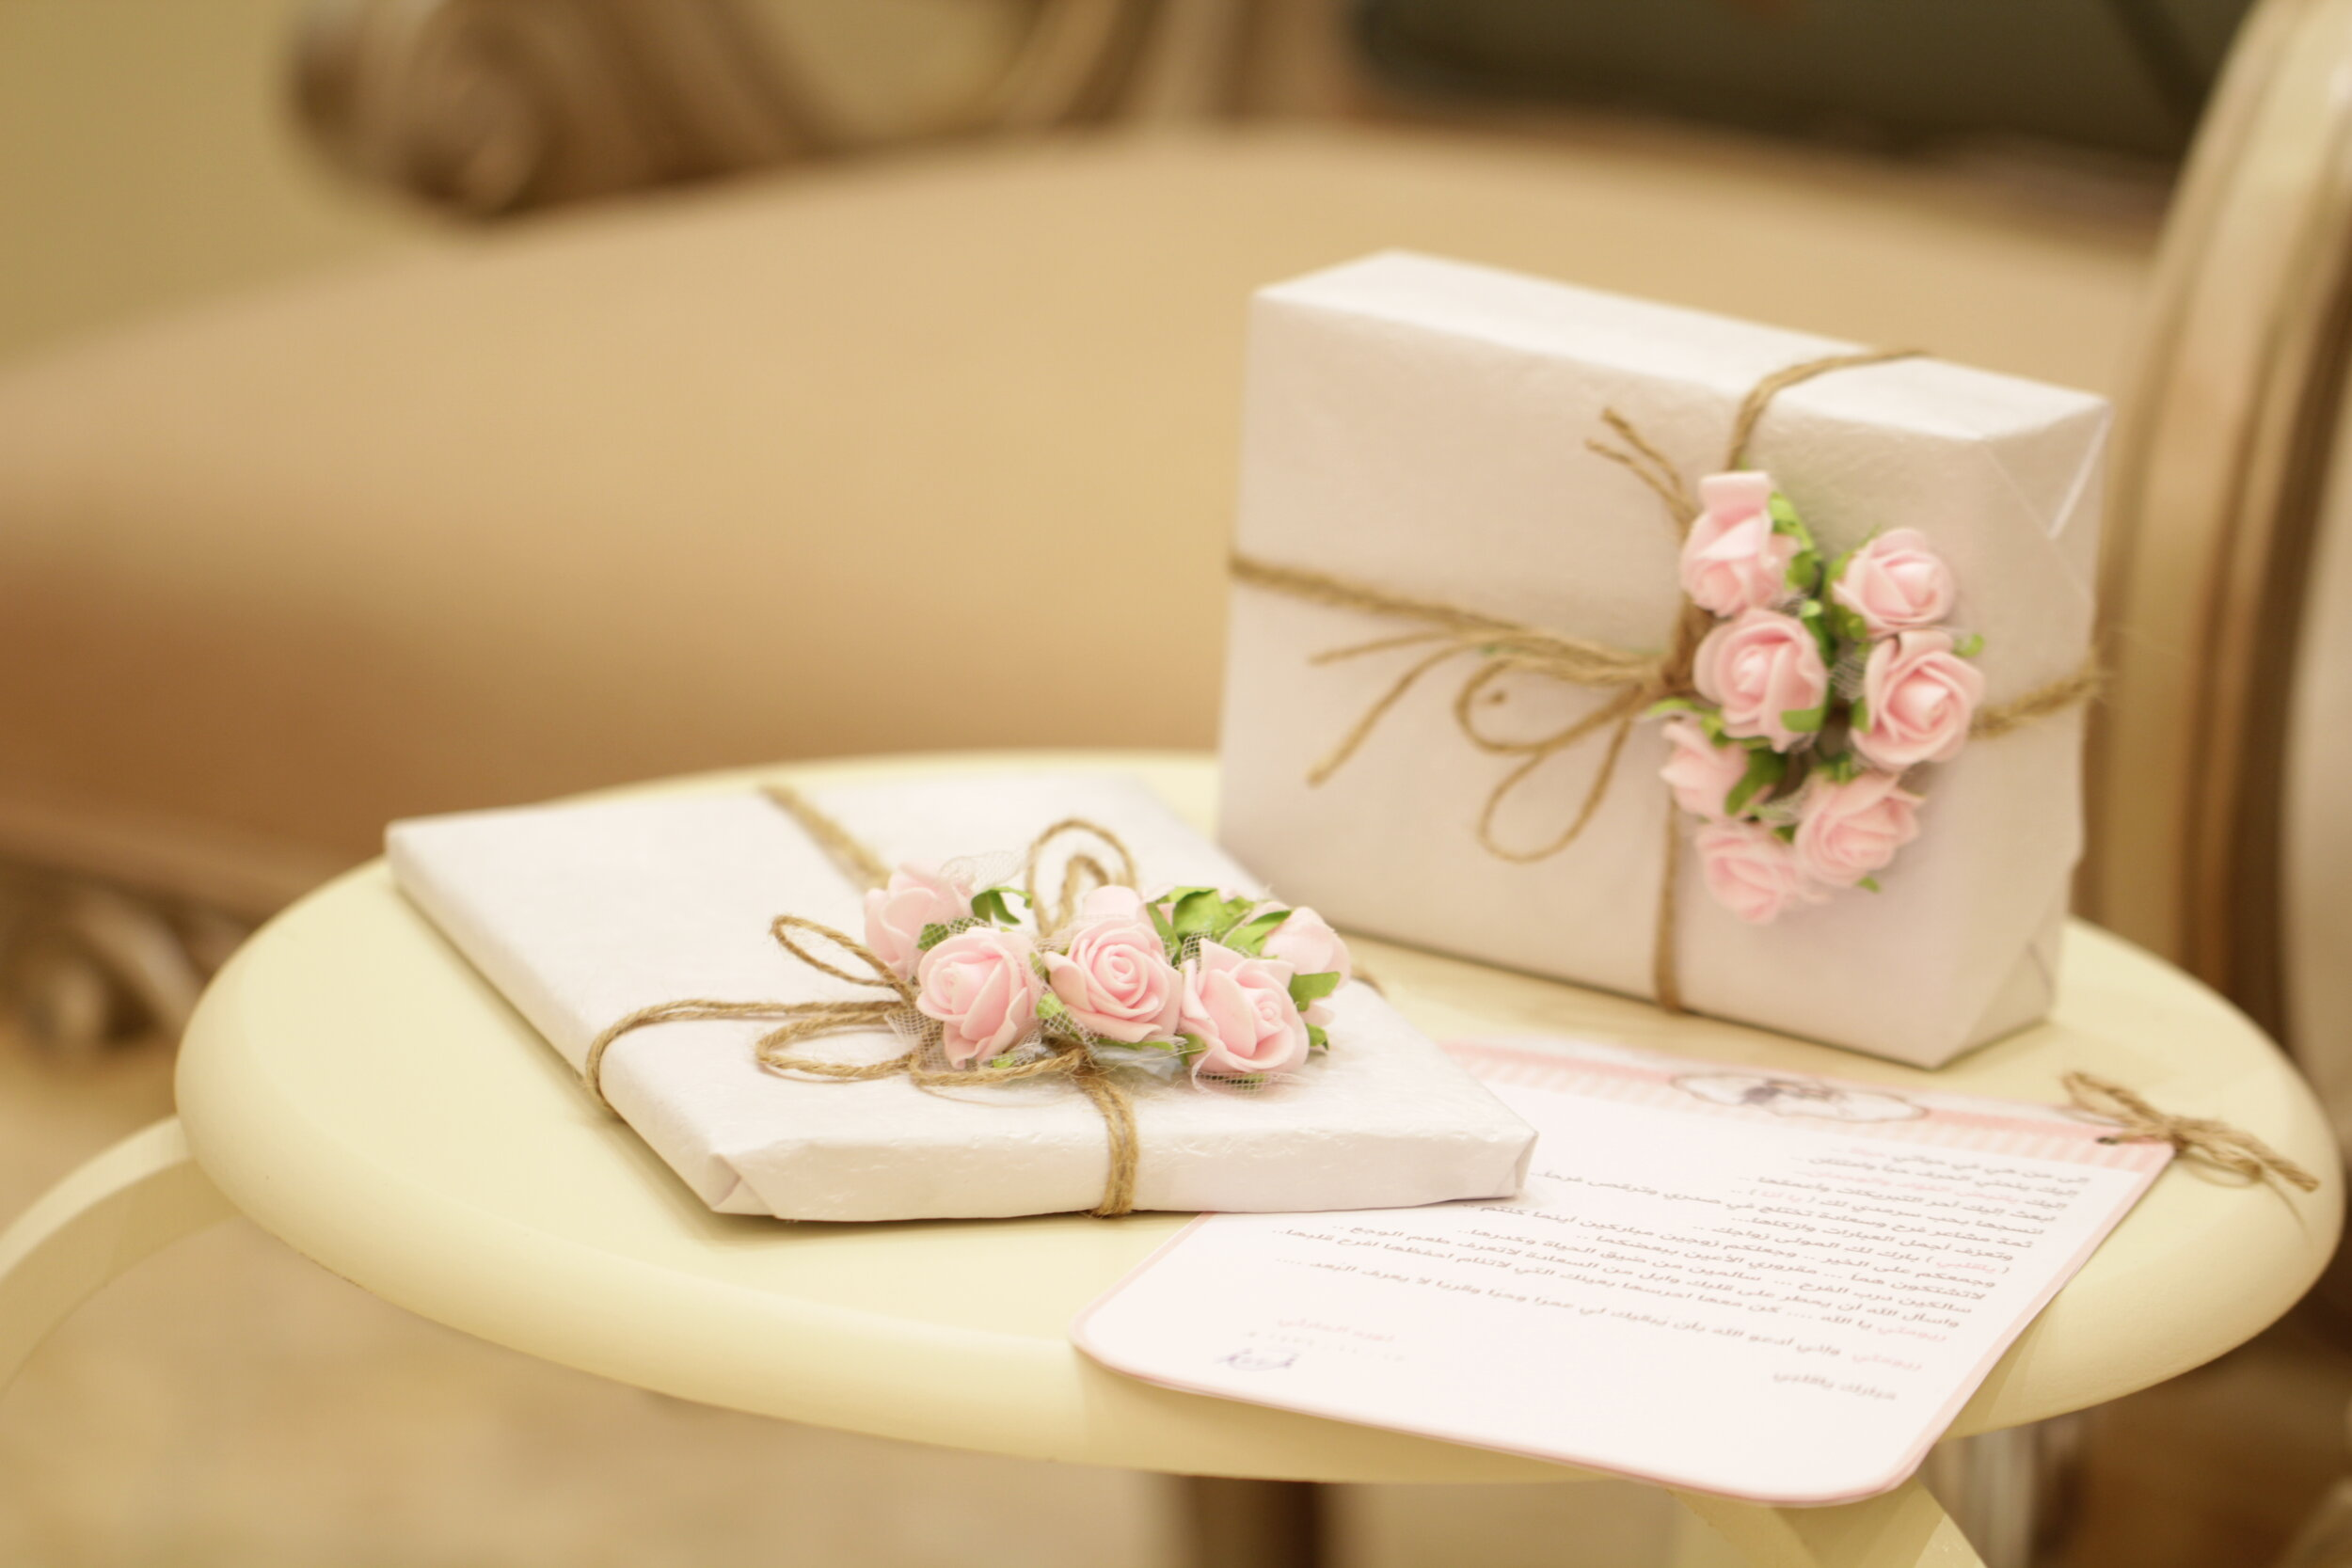 Two gifts on a table, wrapped in white paper tied with string and decorated with pink roses. Do-it-yourself gifts everyone will love.